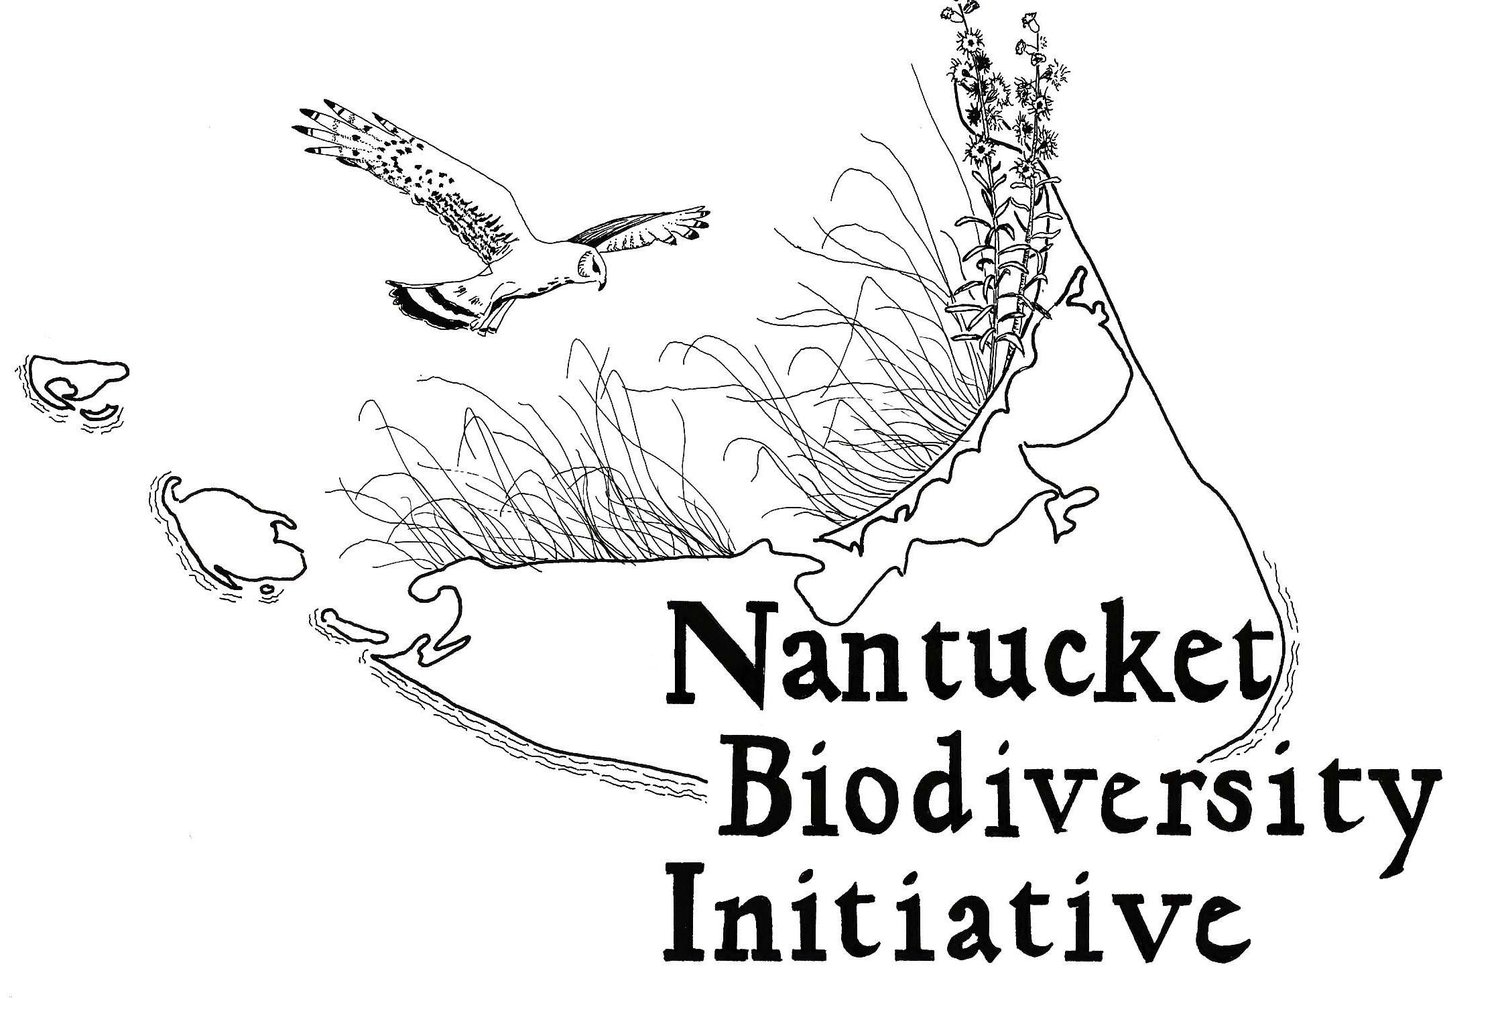 Nantucket Biodiversity Initiative